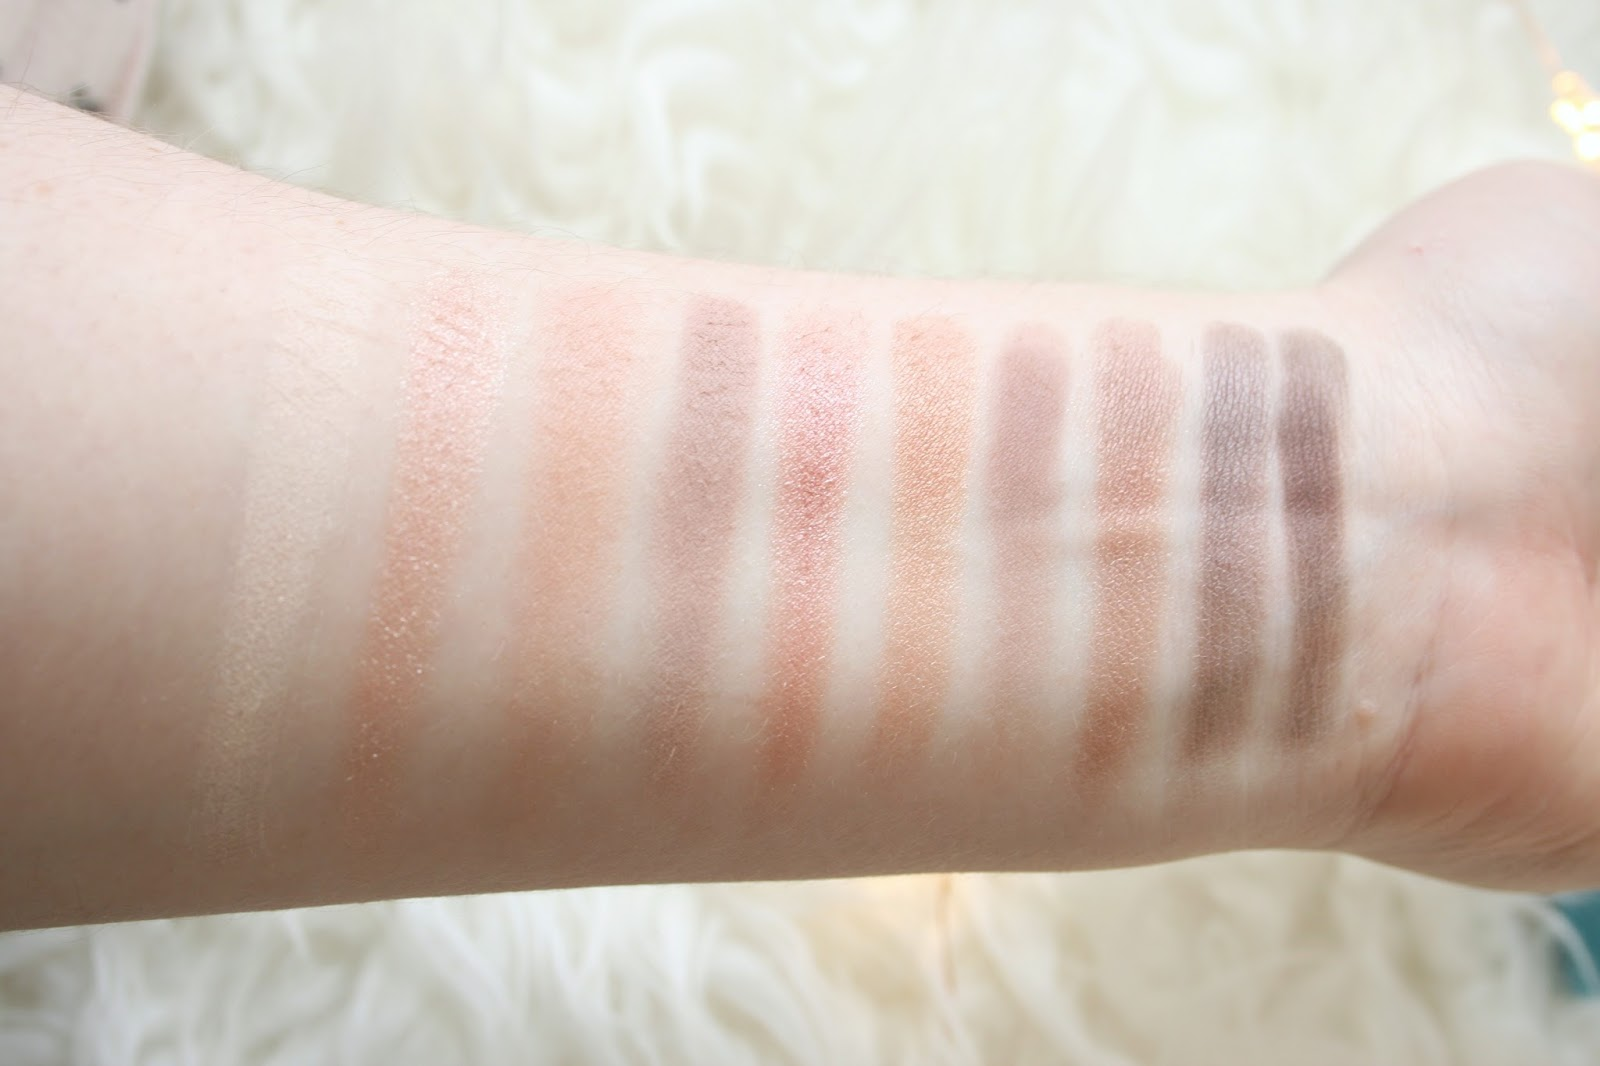 Elf Cosmetics Rose Gold Eyeshadow Palette Swatches